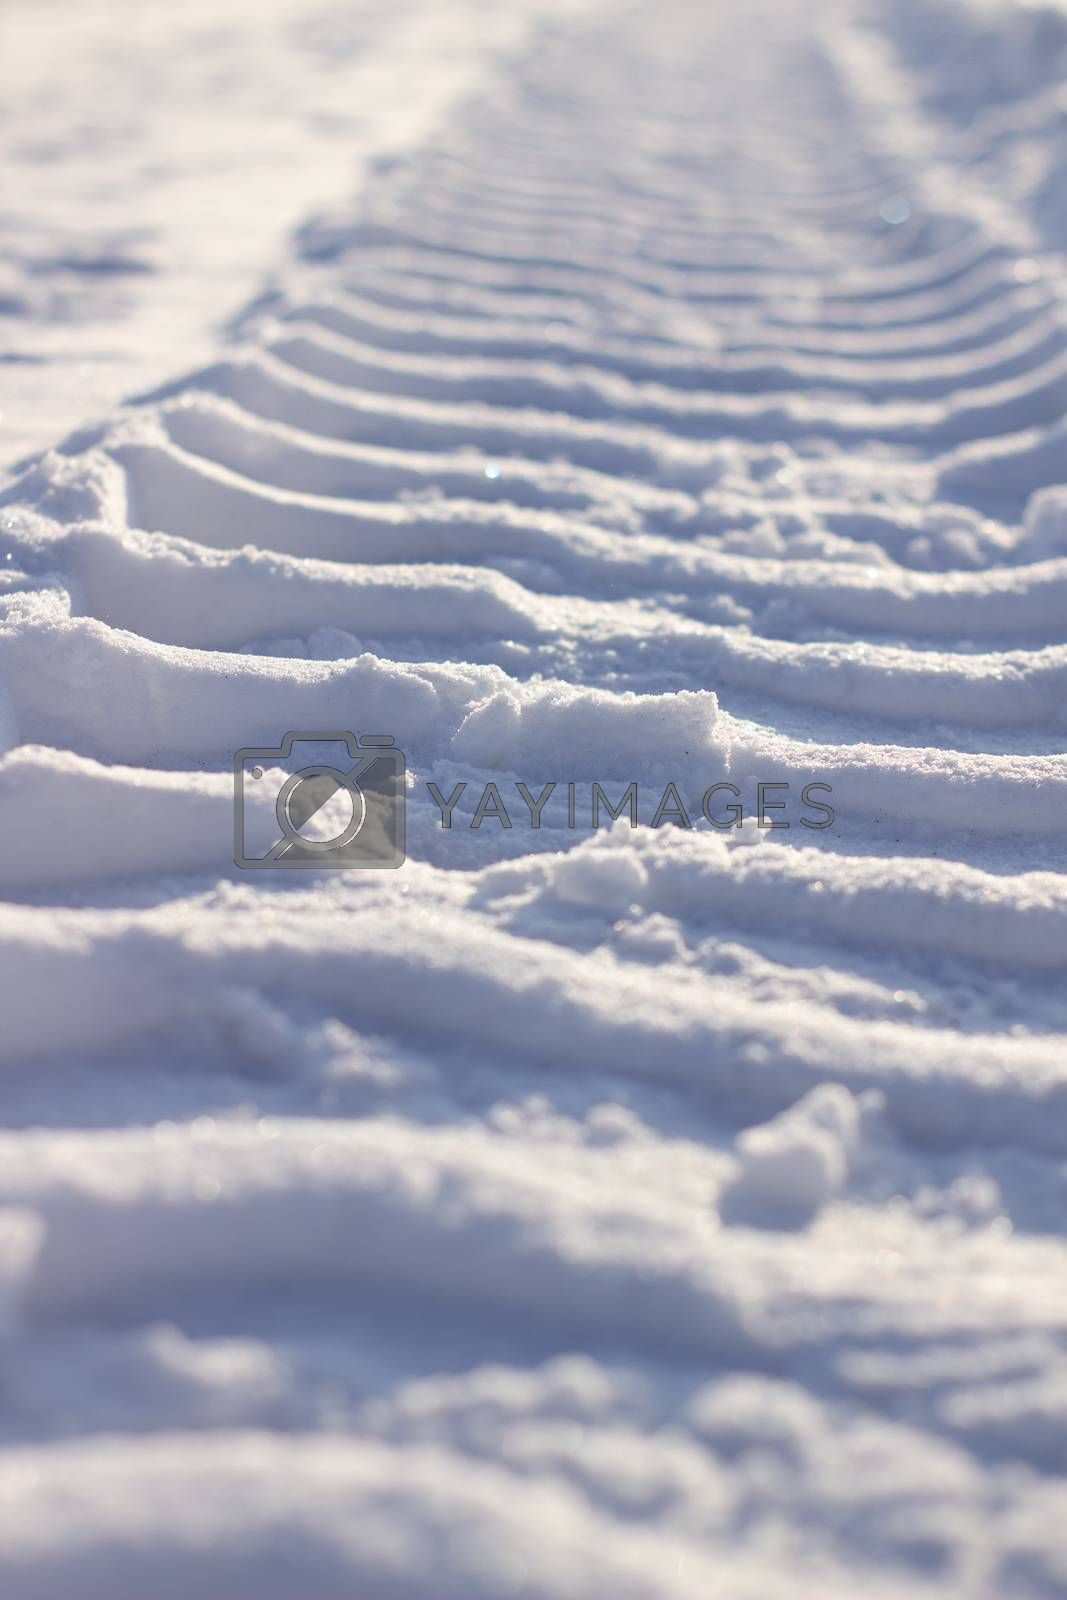 Fresh tracks from the tractor in the snow in winter. Snow clearance